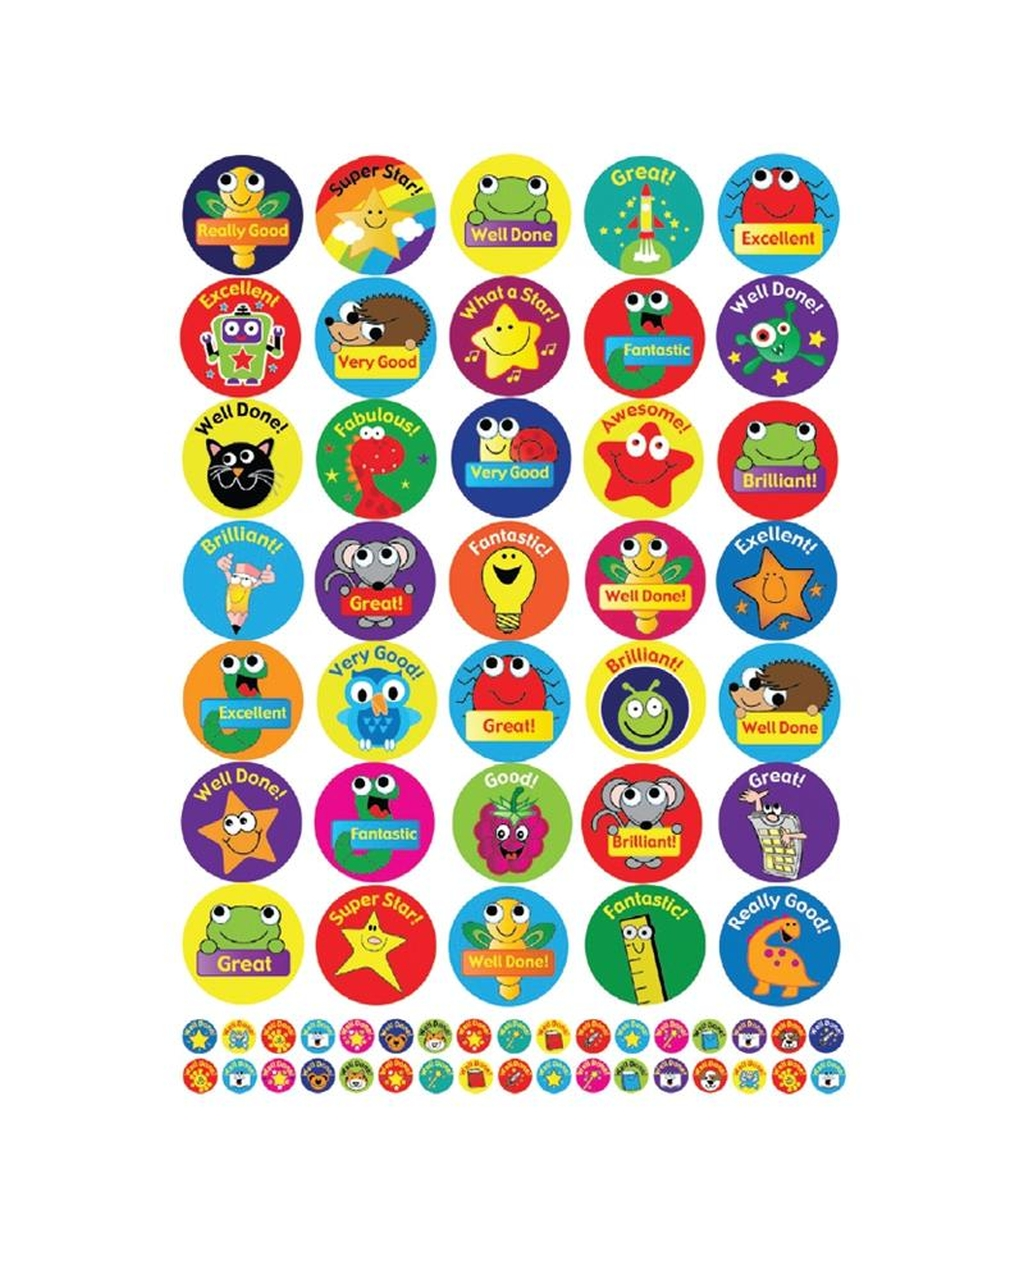 Animals, Stars and Gadgets Sticker Bumper Pack - 690 Stickers